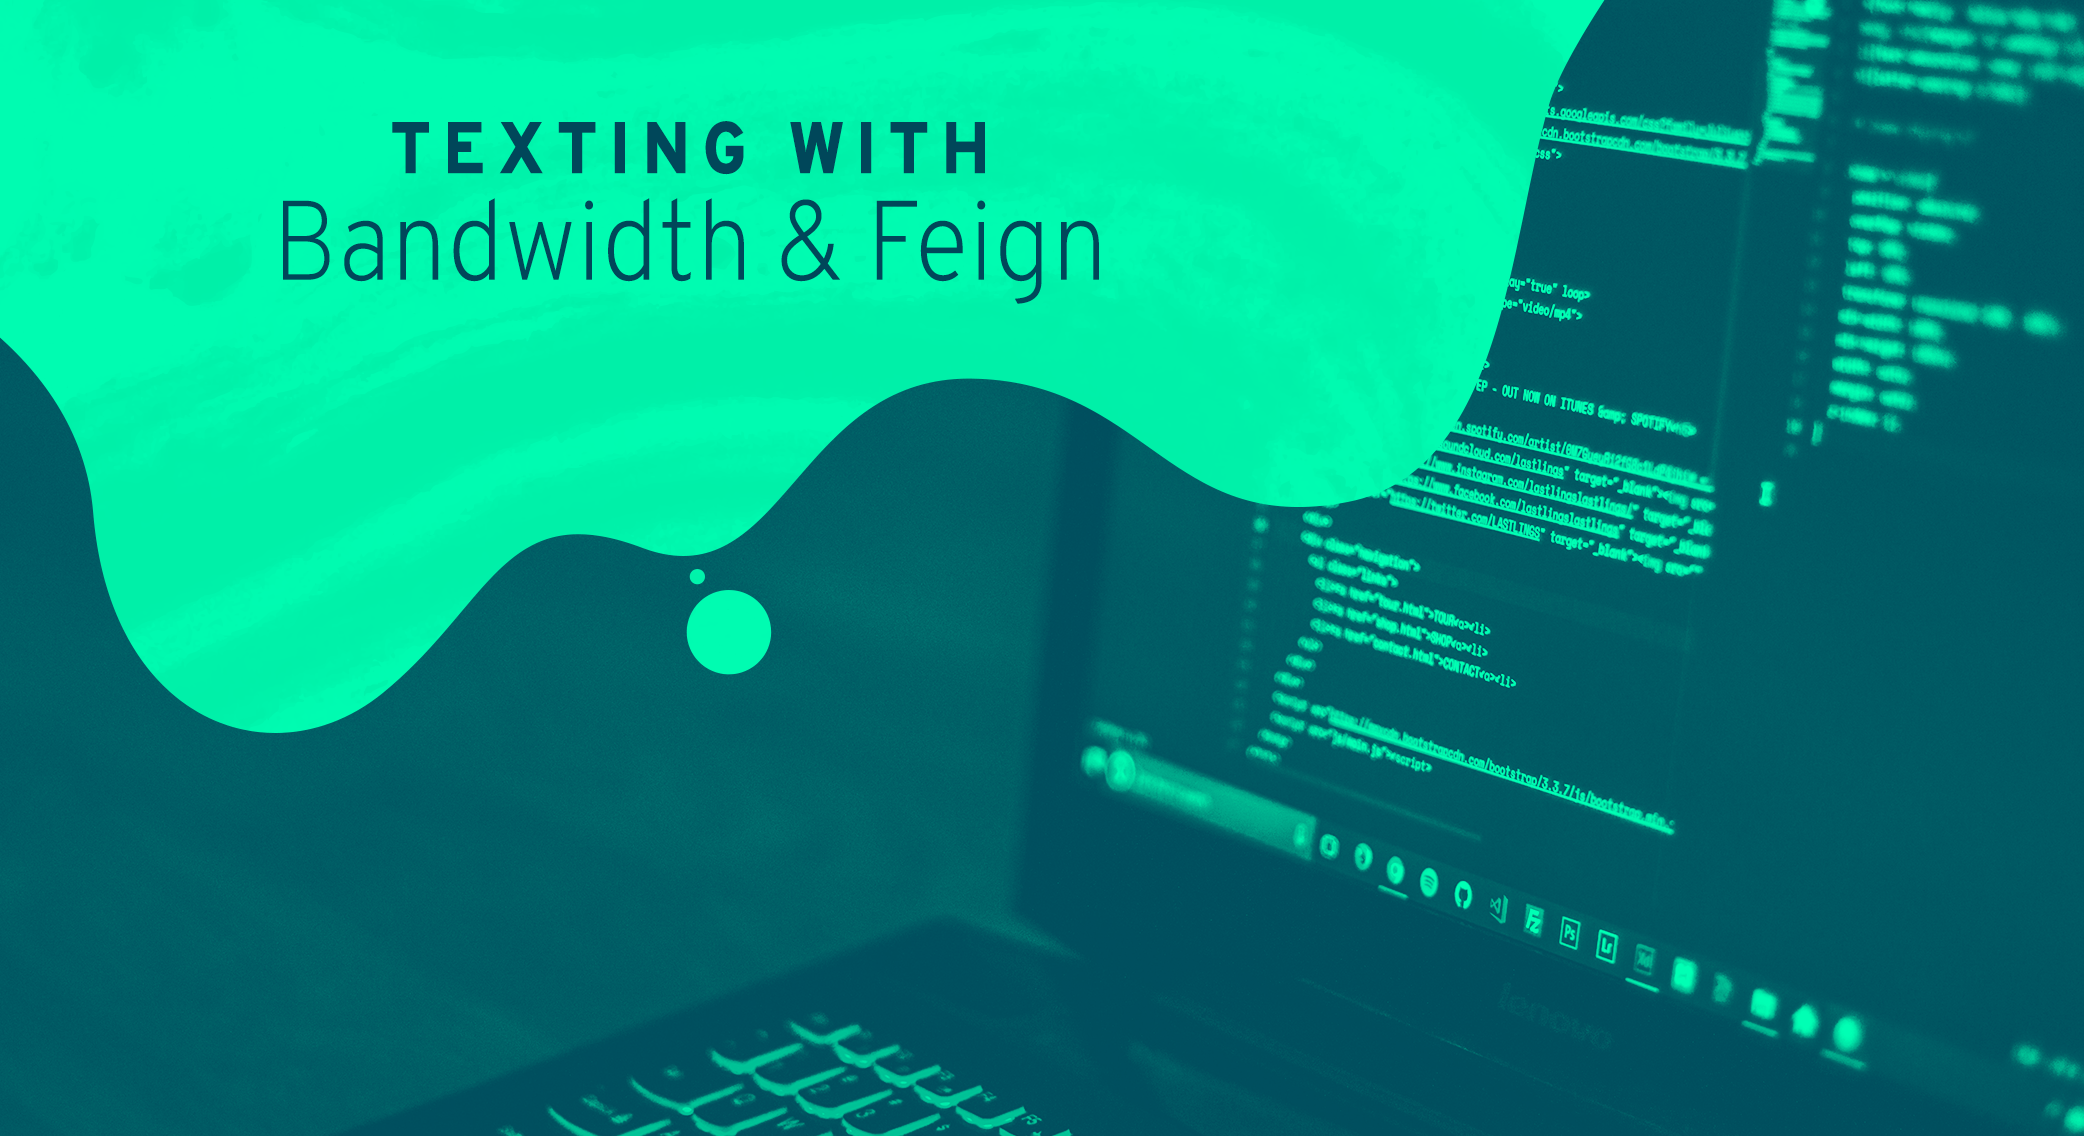 Image for texting with Bandwidth and Feign